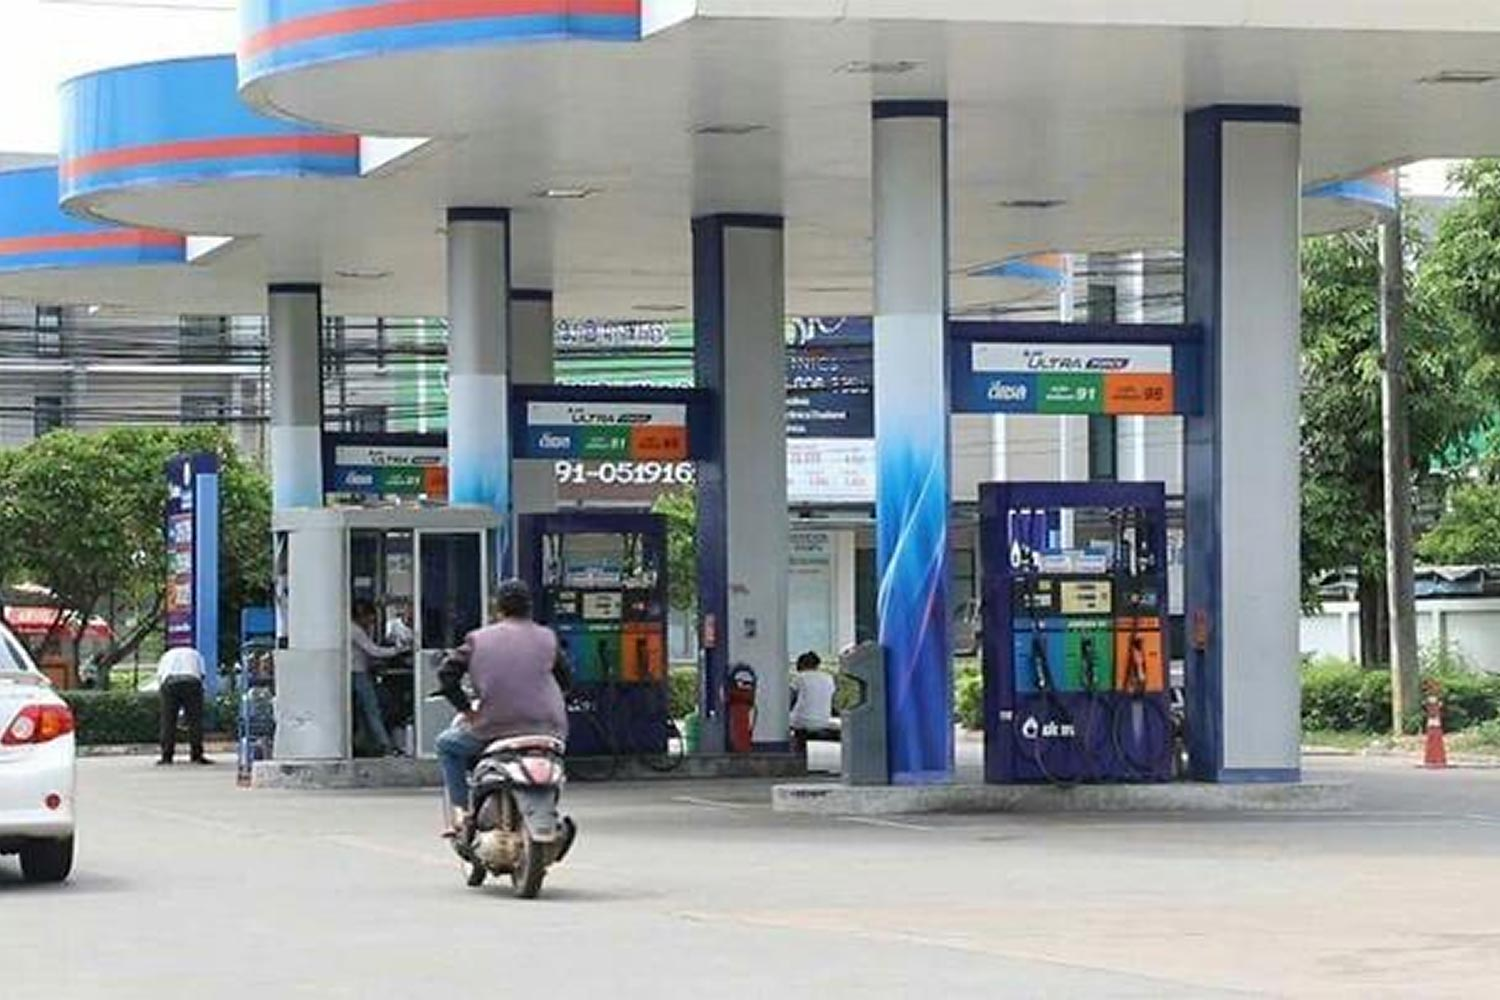 Fuel consumption in the first quarter is forecast to rise by 6.6%.Post Today